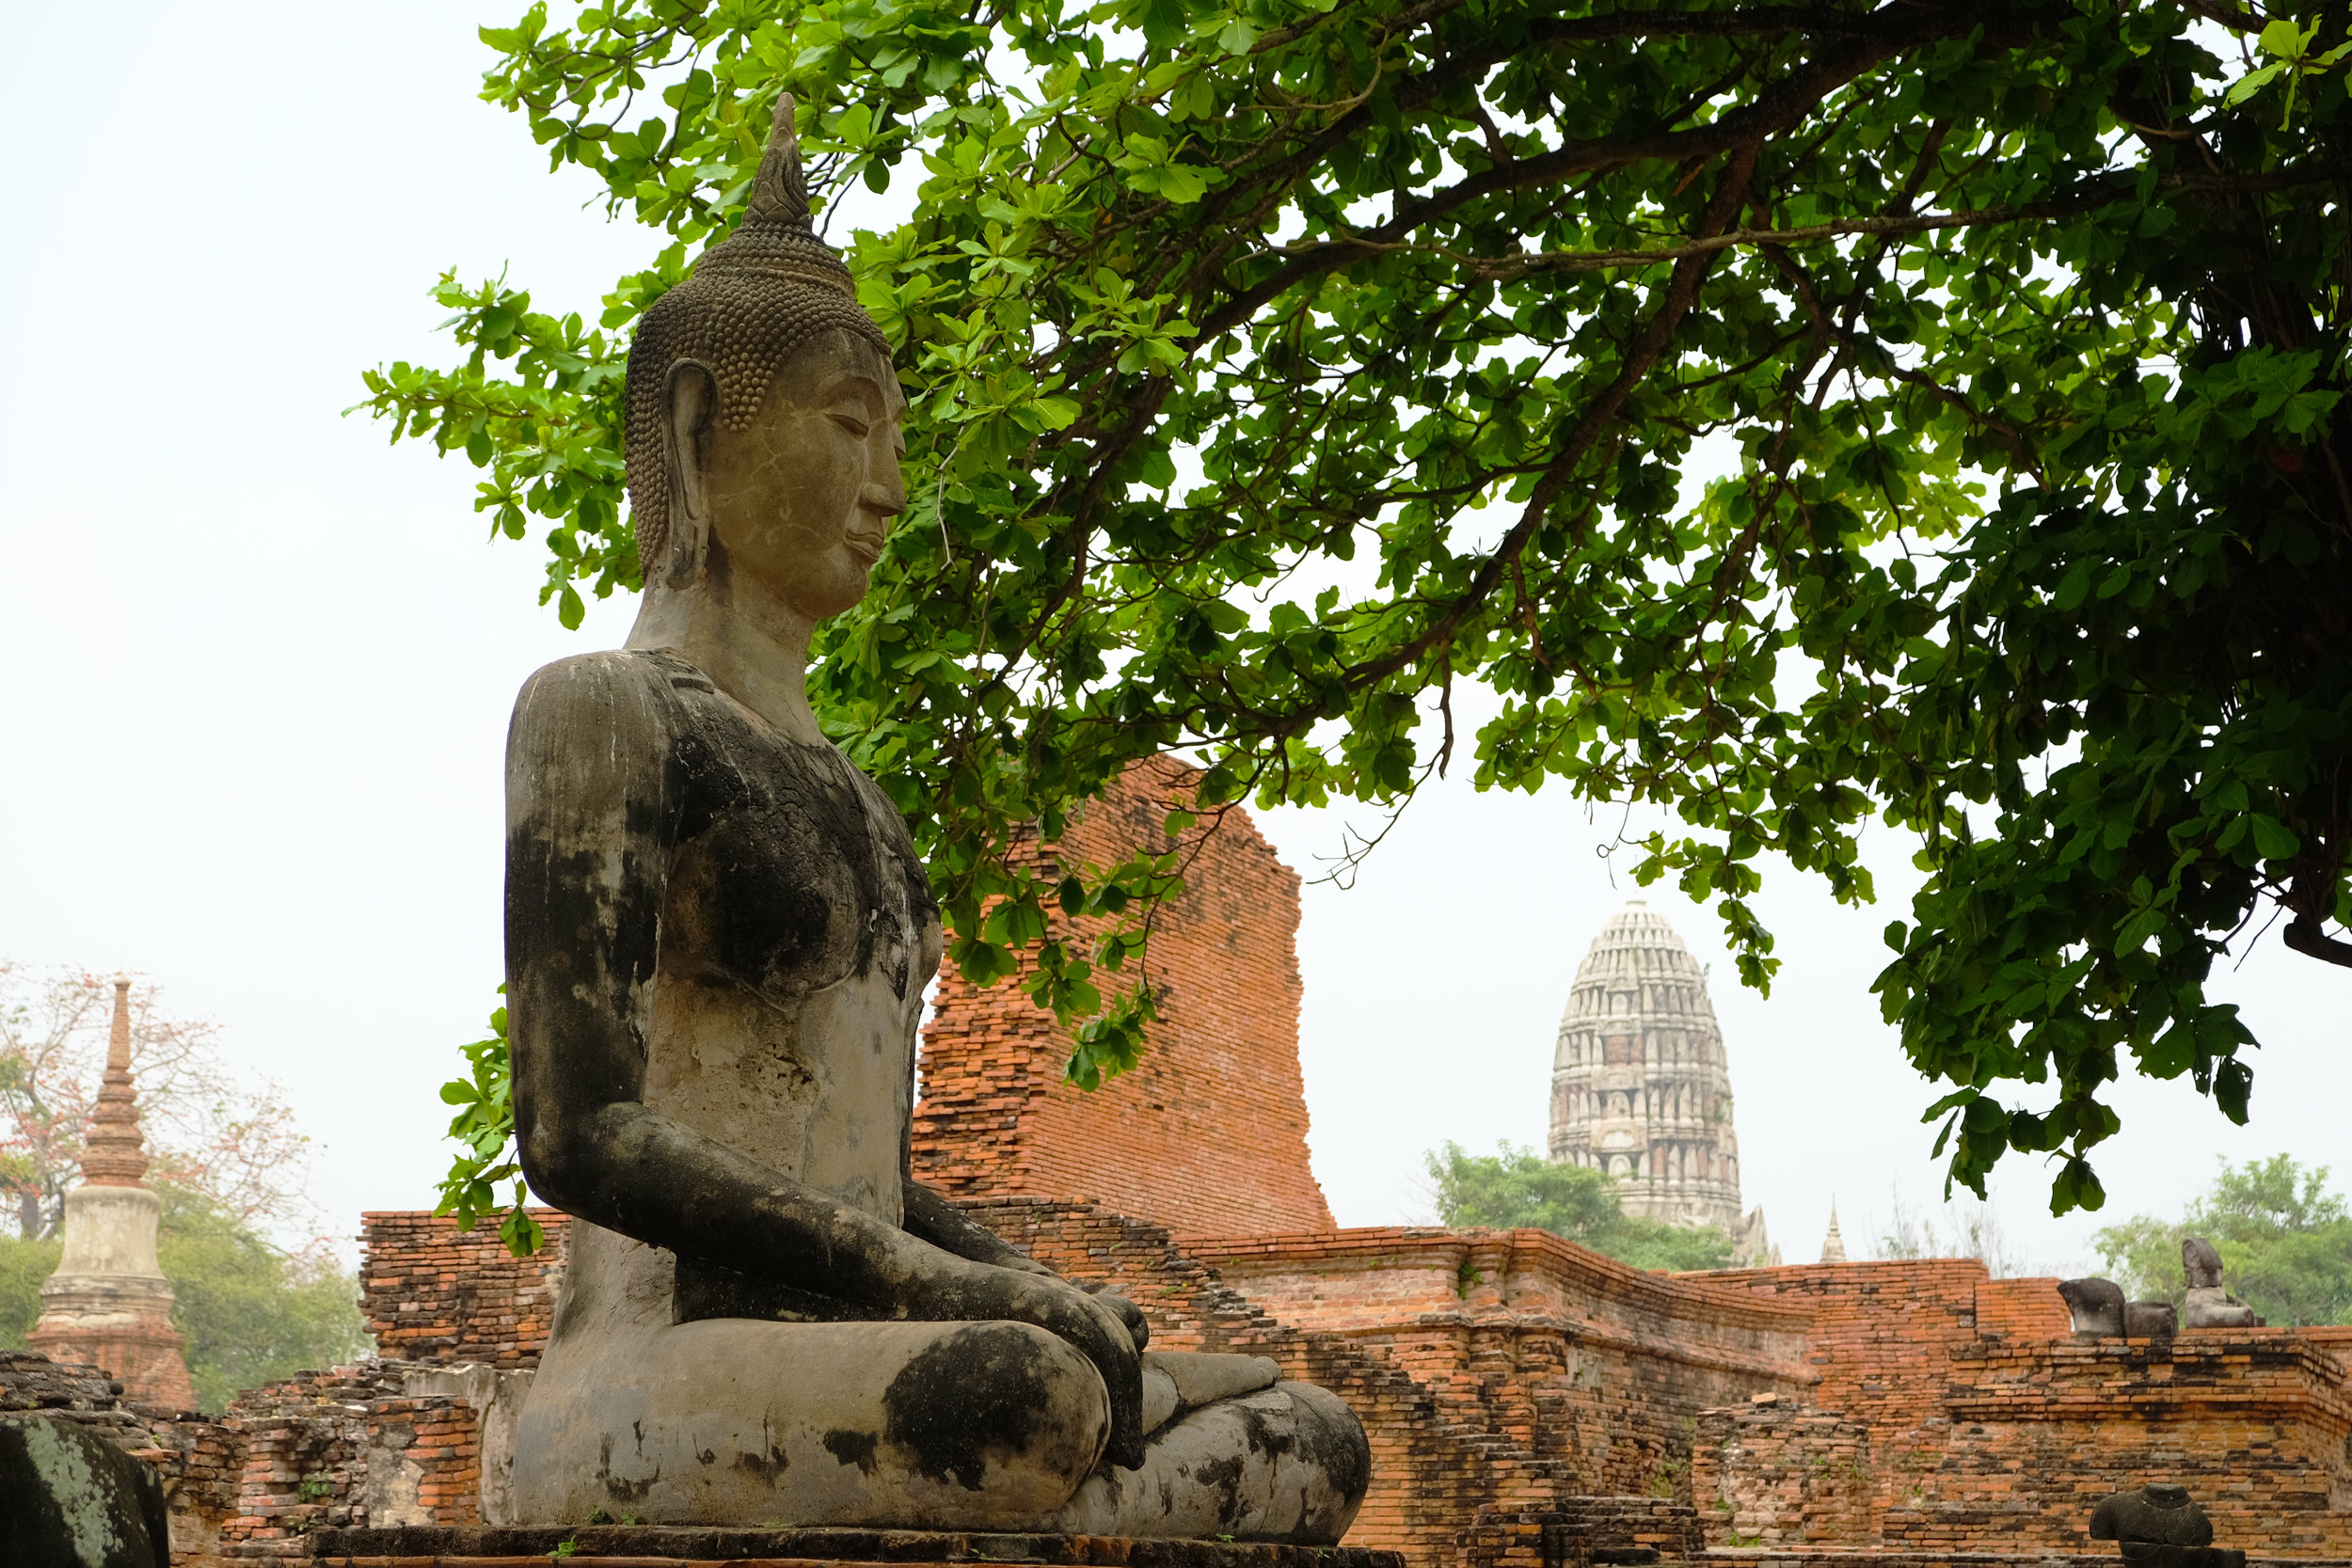 Buddha looks on at Ayutthaya, the capital of Siam from 1351 to 1767